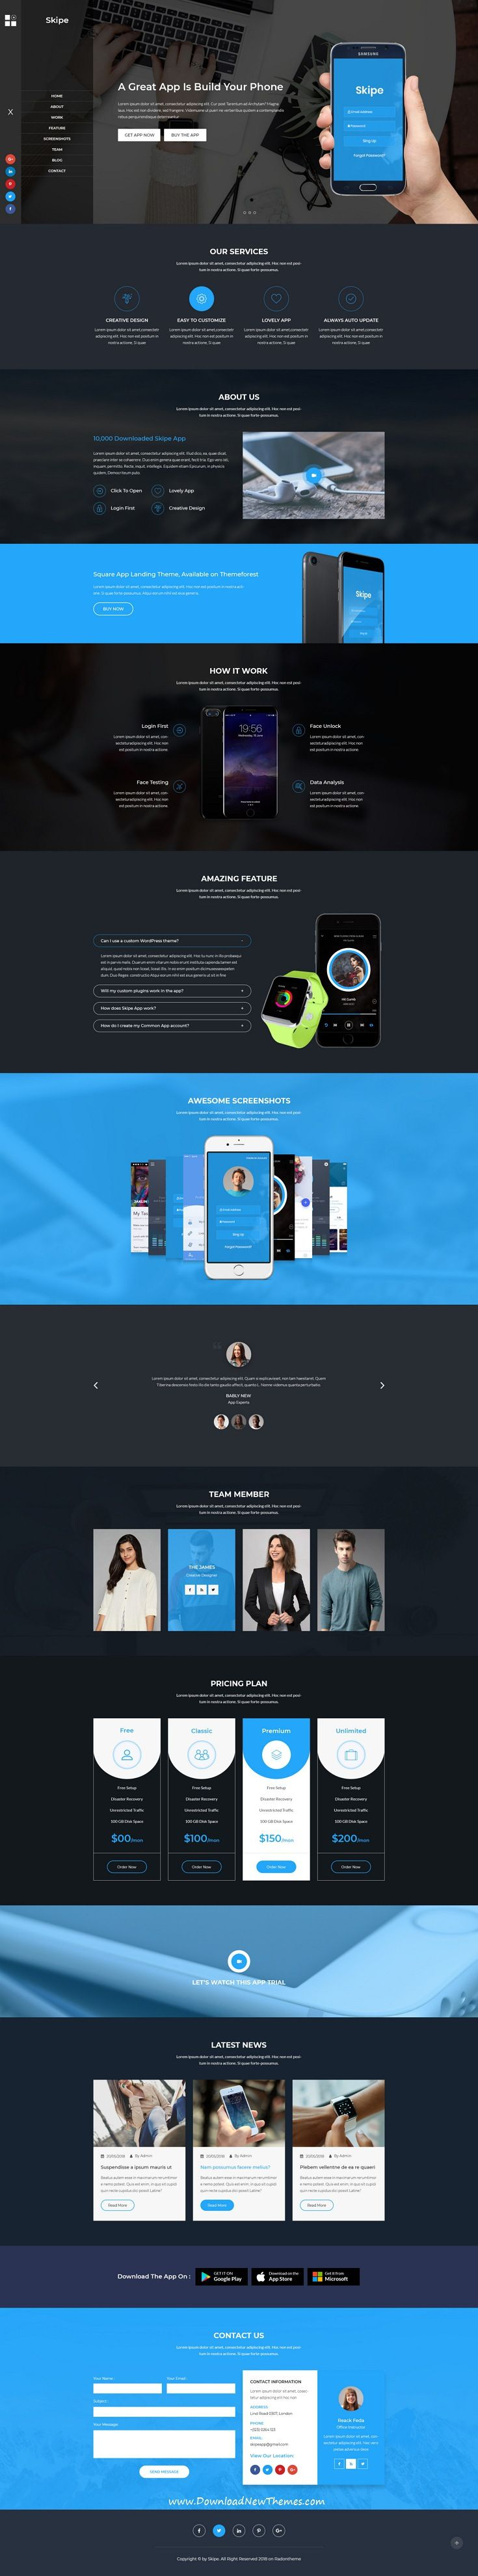 Skipe - Mobile App Landing Page PSD Template | Mobile app, App and ...